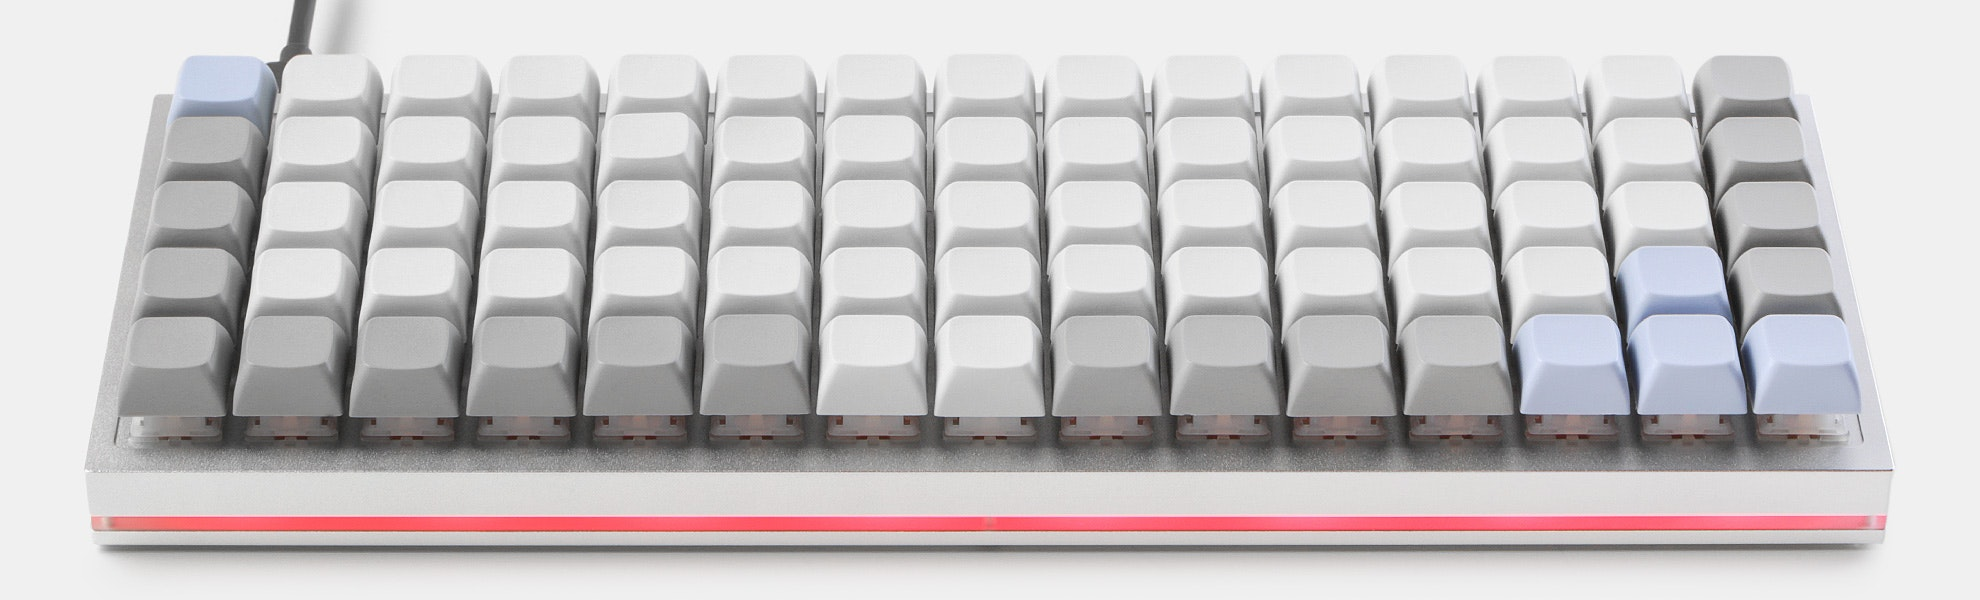 ID75 Hot-Swappable Ortholinear Keyboard Kit